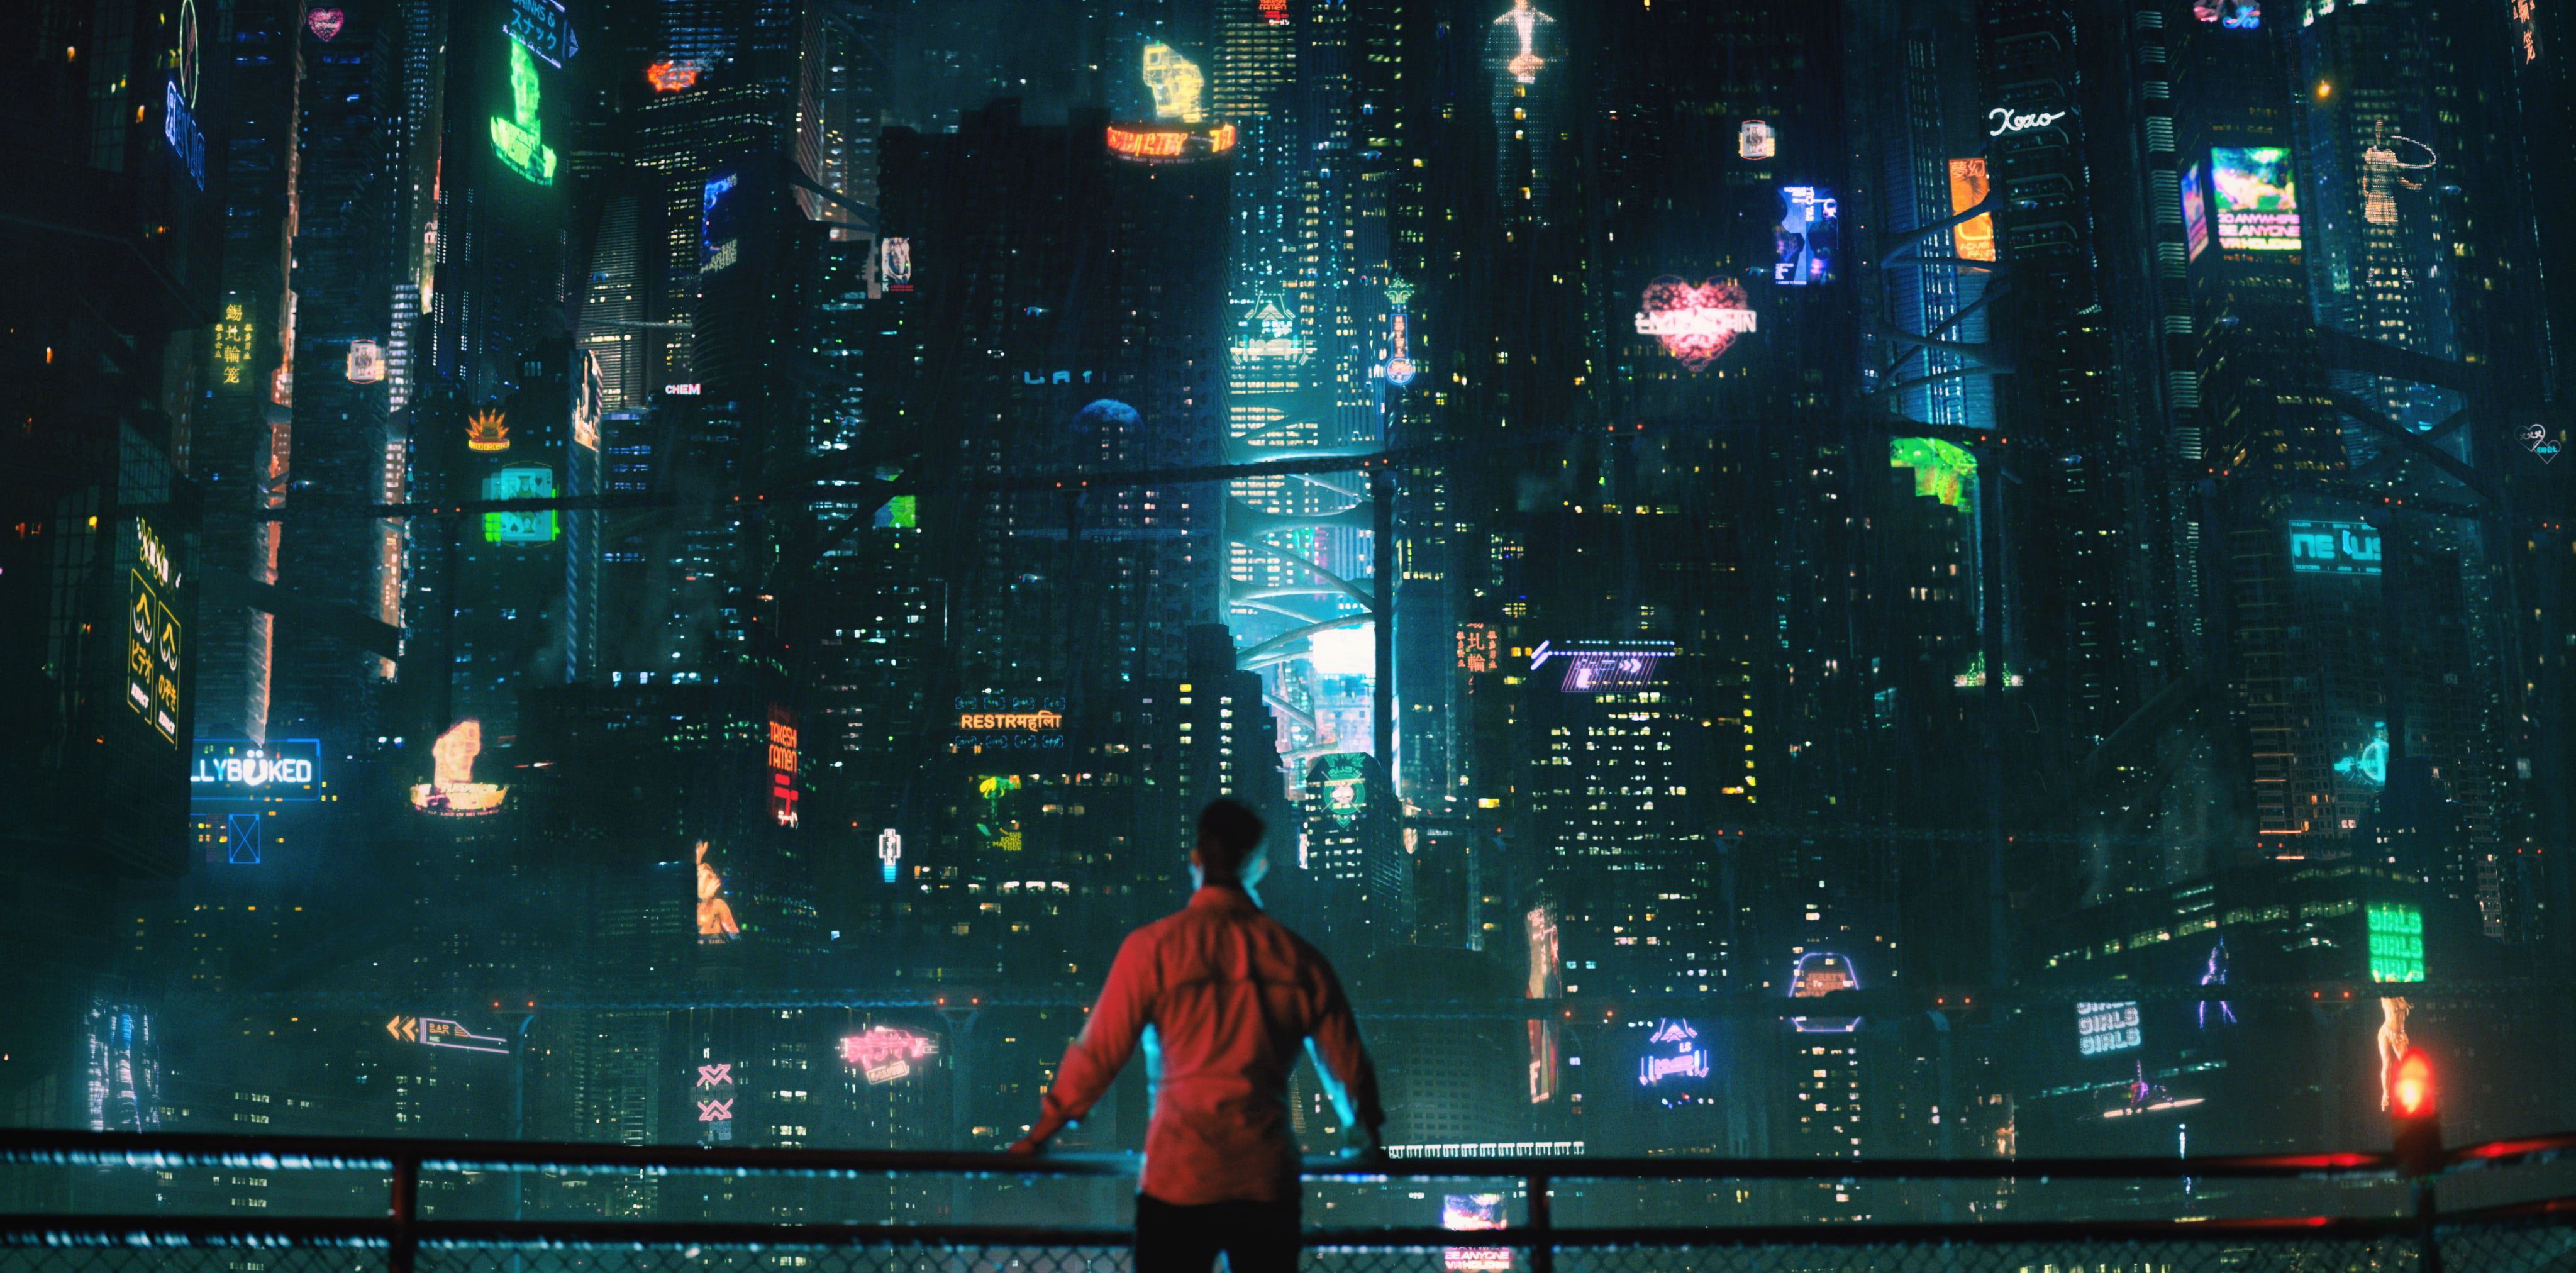 Men S Red Shirt Netflix Altered Carbon Cyberpunk City Game Boy Advance 4k Wallpaper Hdwallpaper Deskto In 2020 Altered Carbon Cyberpunk City Cyberpunk Aesthetic